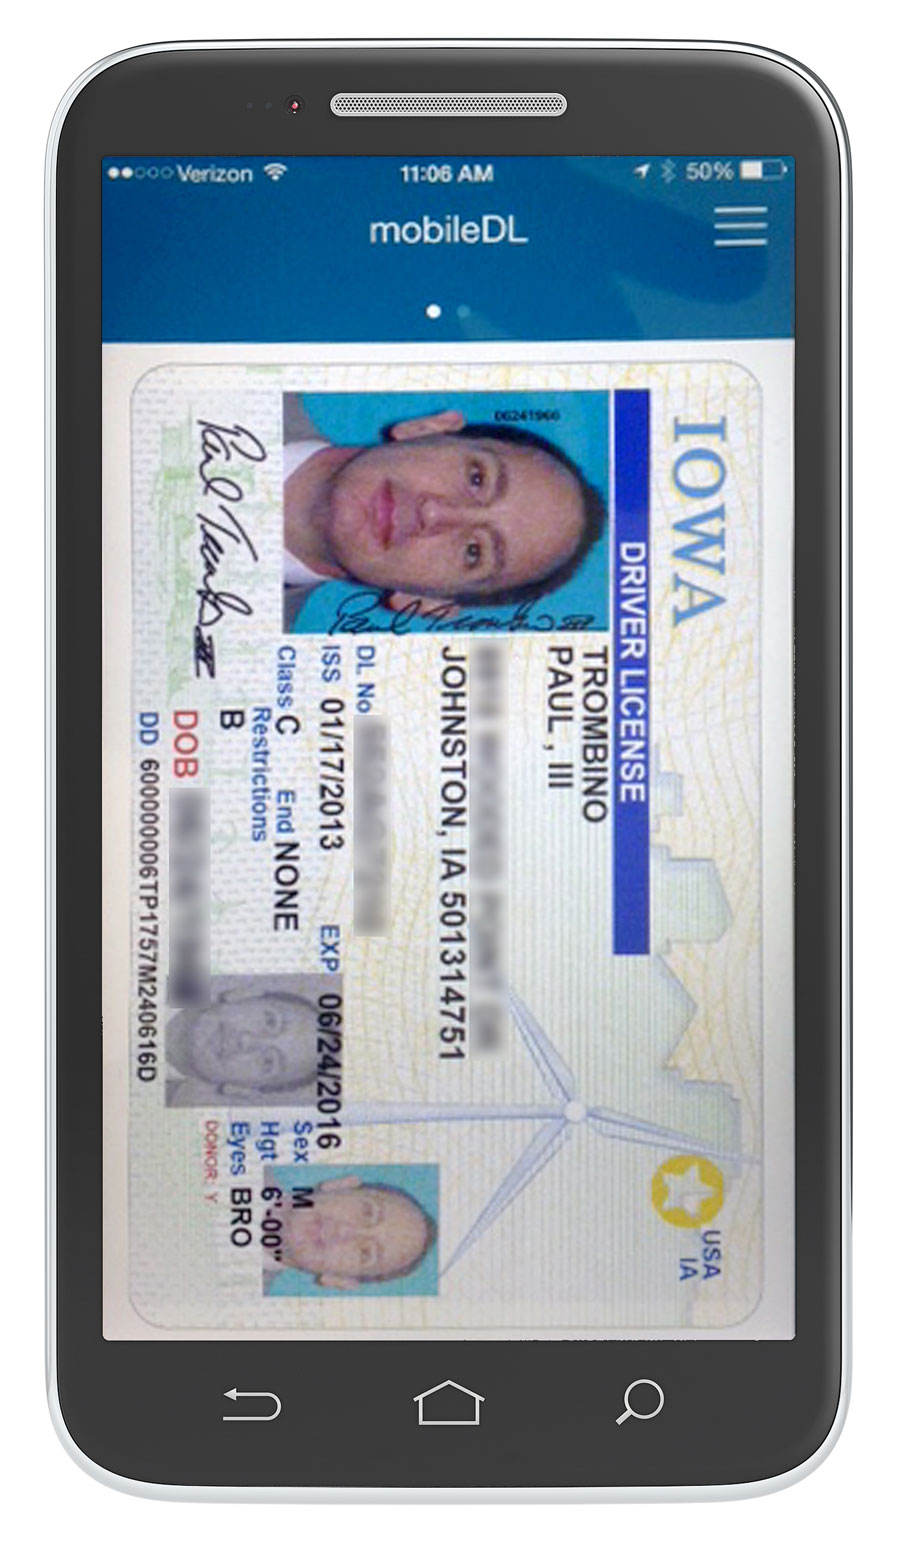 mobile driver 39 s license being tested by dot uses selfie for verification radio iowa. Black Bedroom Furniture Sets. Home Design Ideas